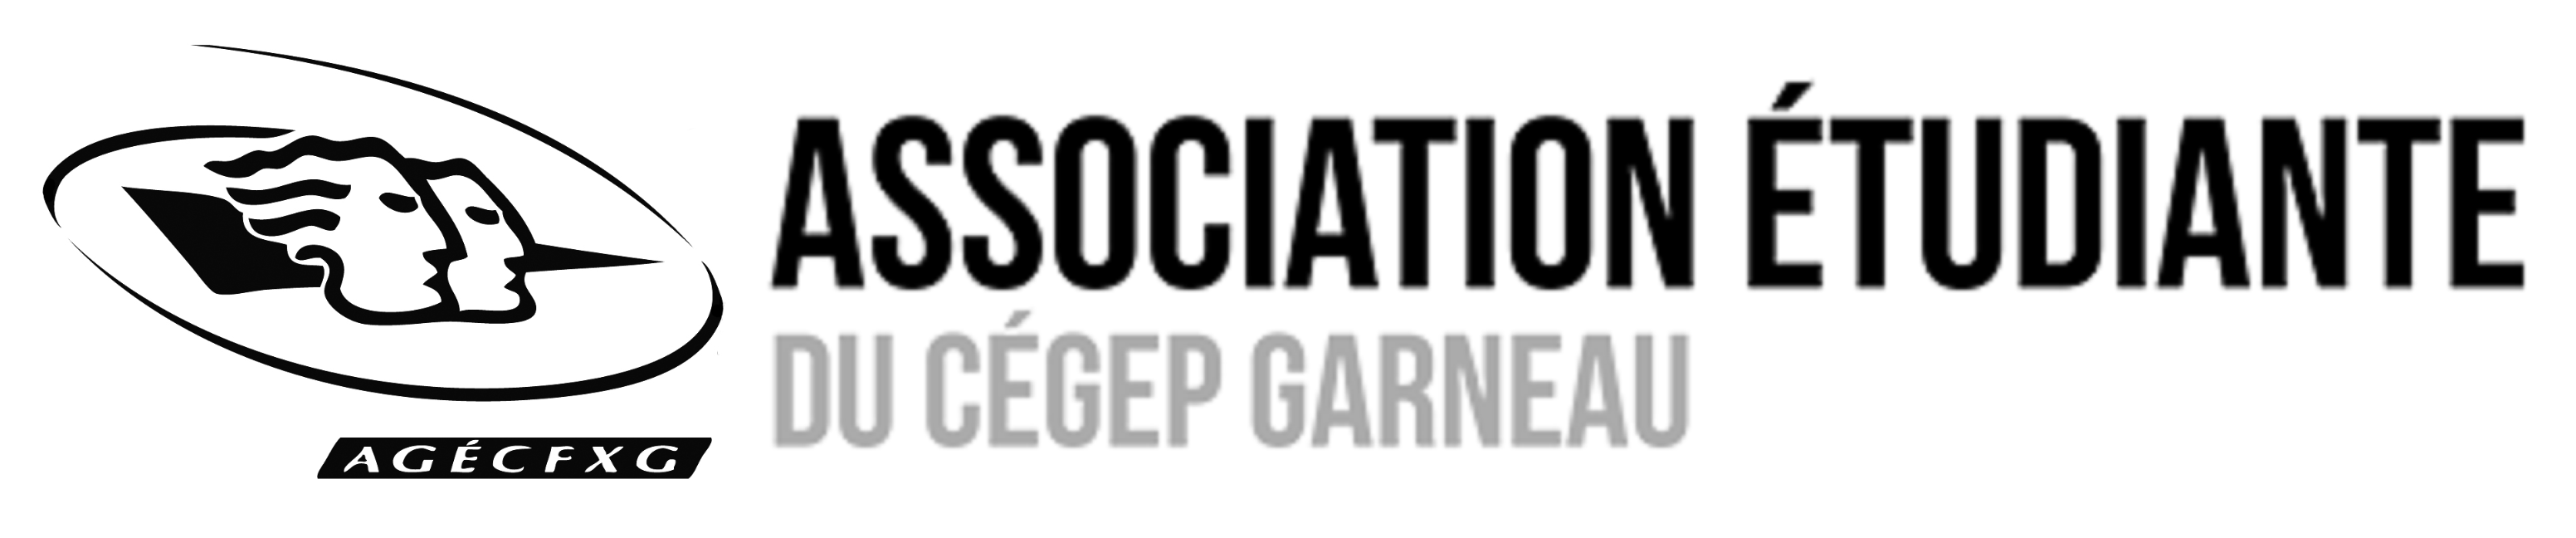 Association étudiante du Cégep de Garneau